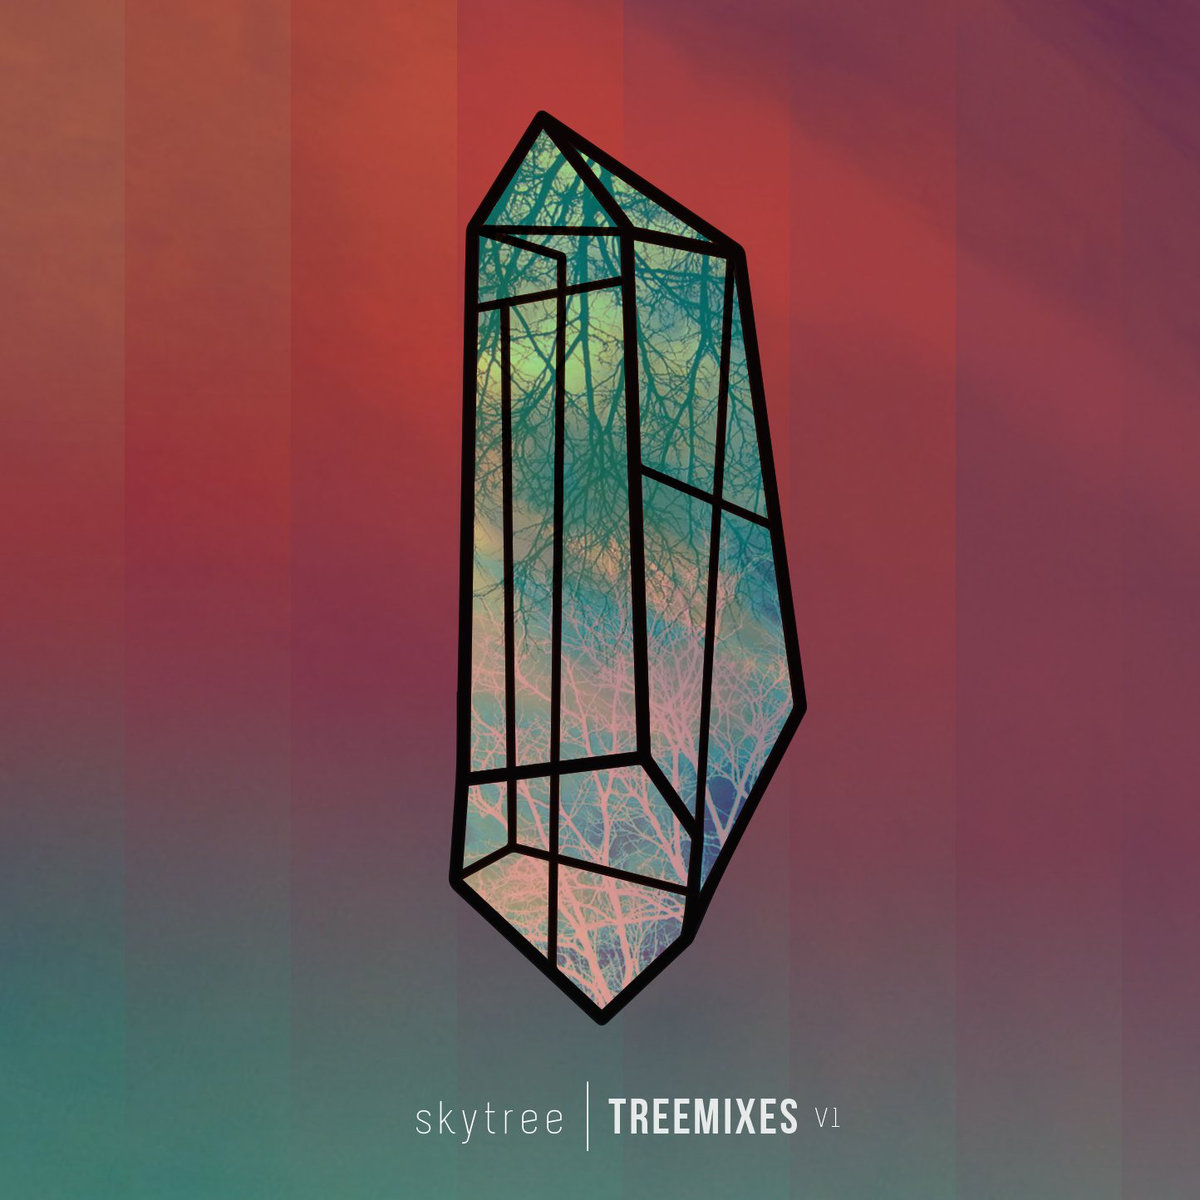 Skytree - See-Through Time (sAuce remix) @ 'Treemixes V1' album (Austin)